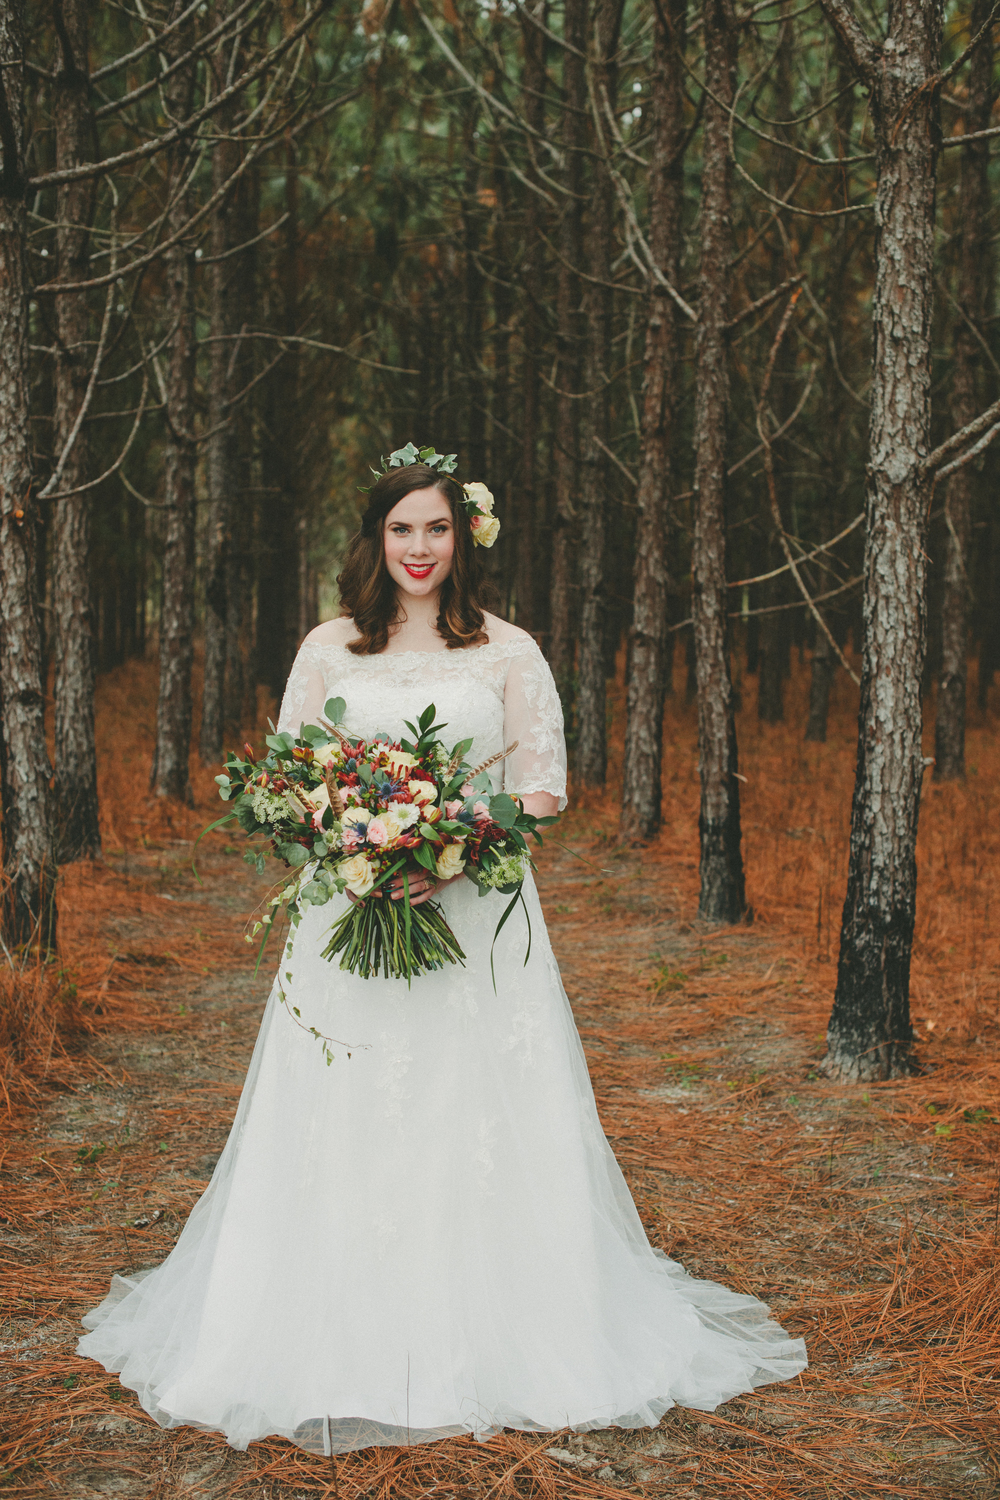 Ng-Photography-backyard-wedding-royal-hair-and-makeup-ivory-and-beau-wedding-planning-wedding-flowers-savannah-florist-savannah-flowers-savannah-weddings-savannah-wedding-savannah-event-planner-savannah-wedding-planner-savannah-rustic-wedding-9.jpg